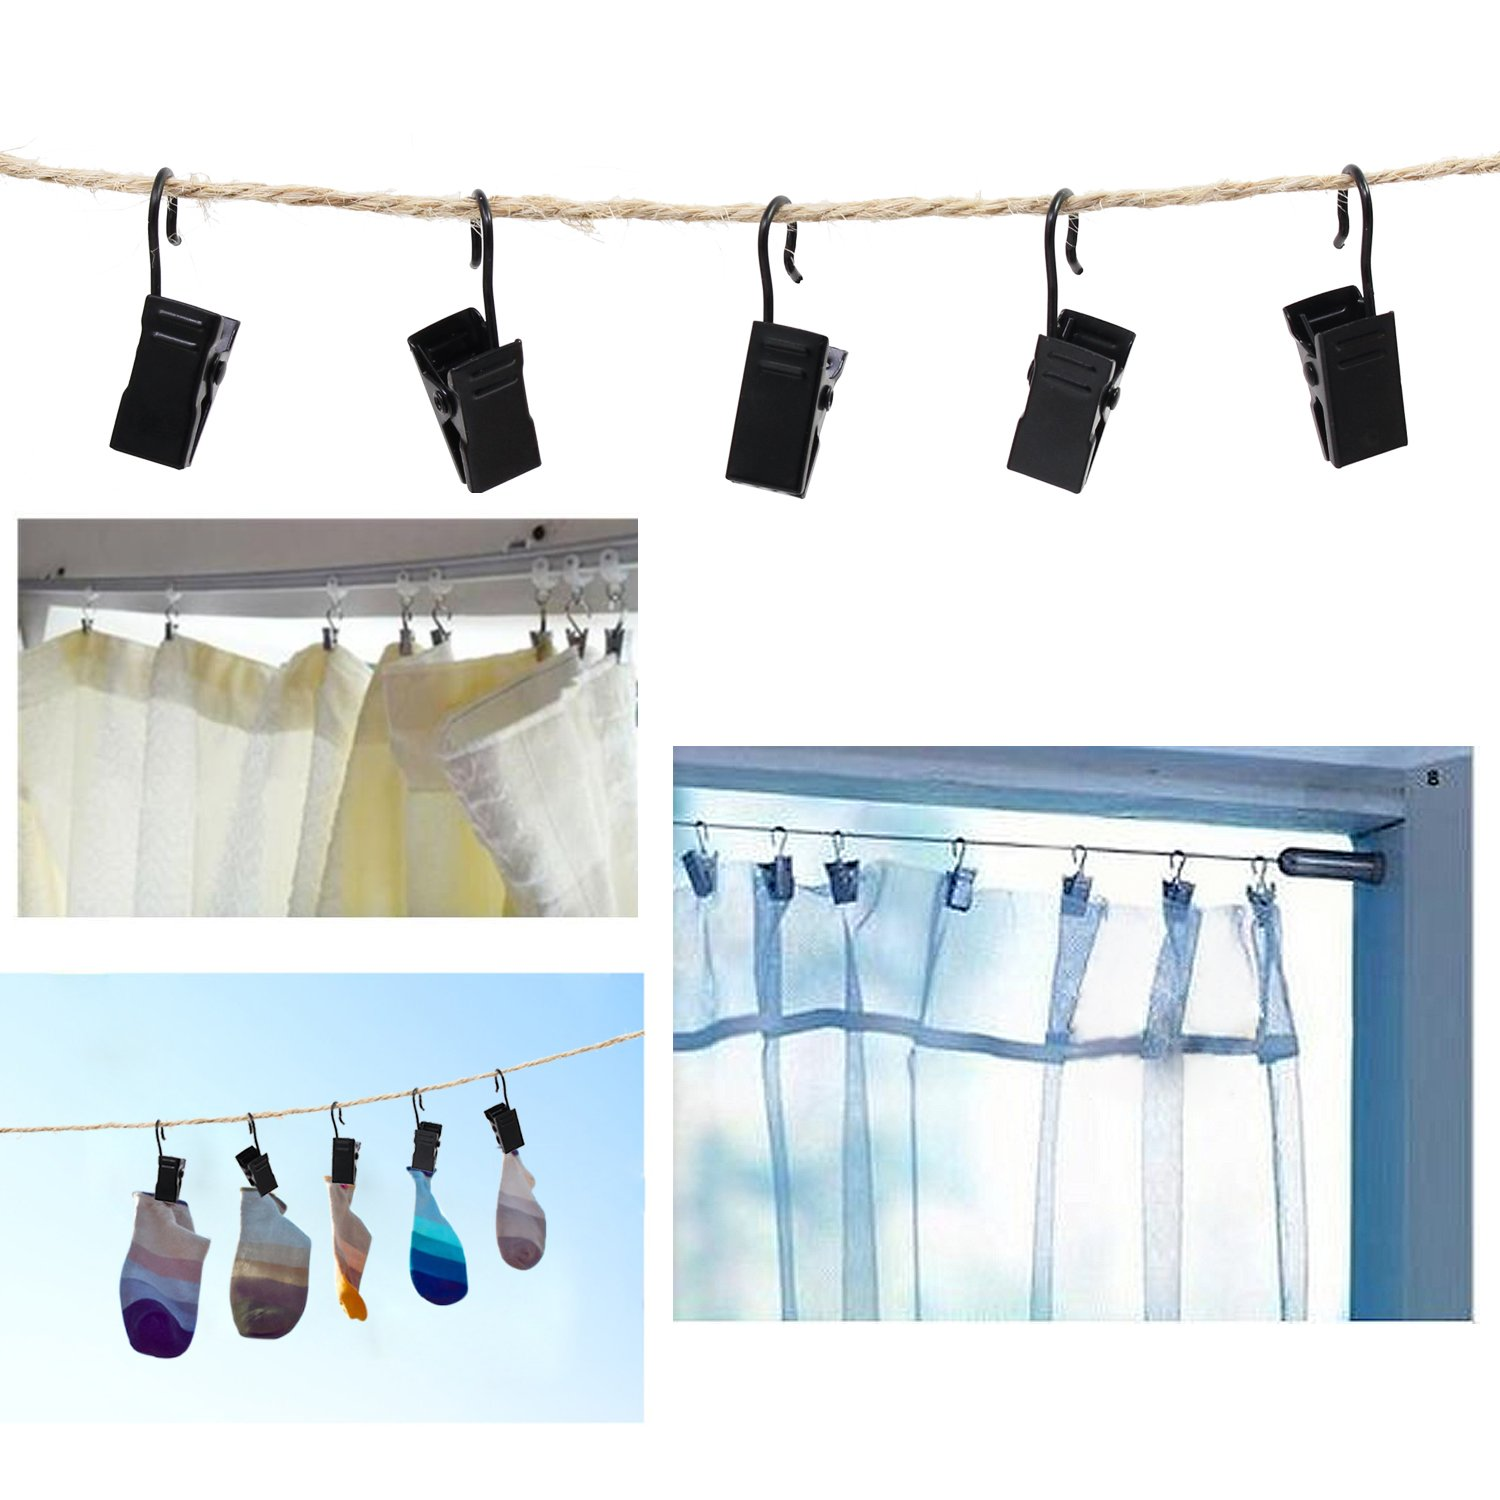 KEESIN Stainless Steel Curtain Clips with S Hook Hanging Clamp Hooks for Curtain,Photos,Lights Hanger and Home Decoration Pack of 50